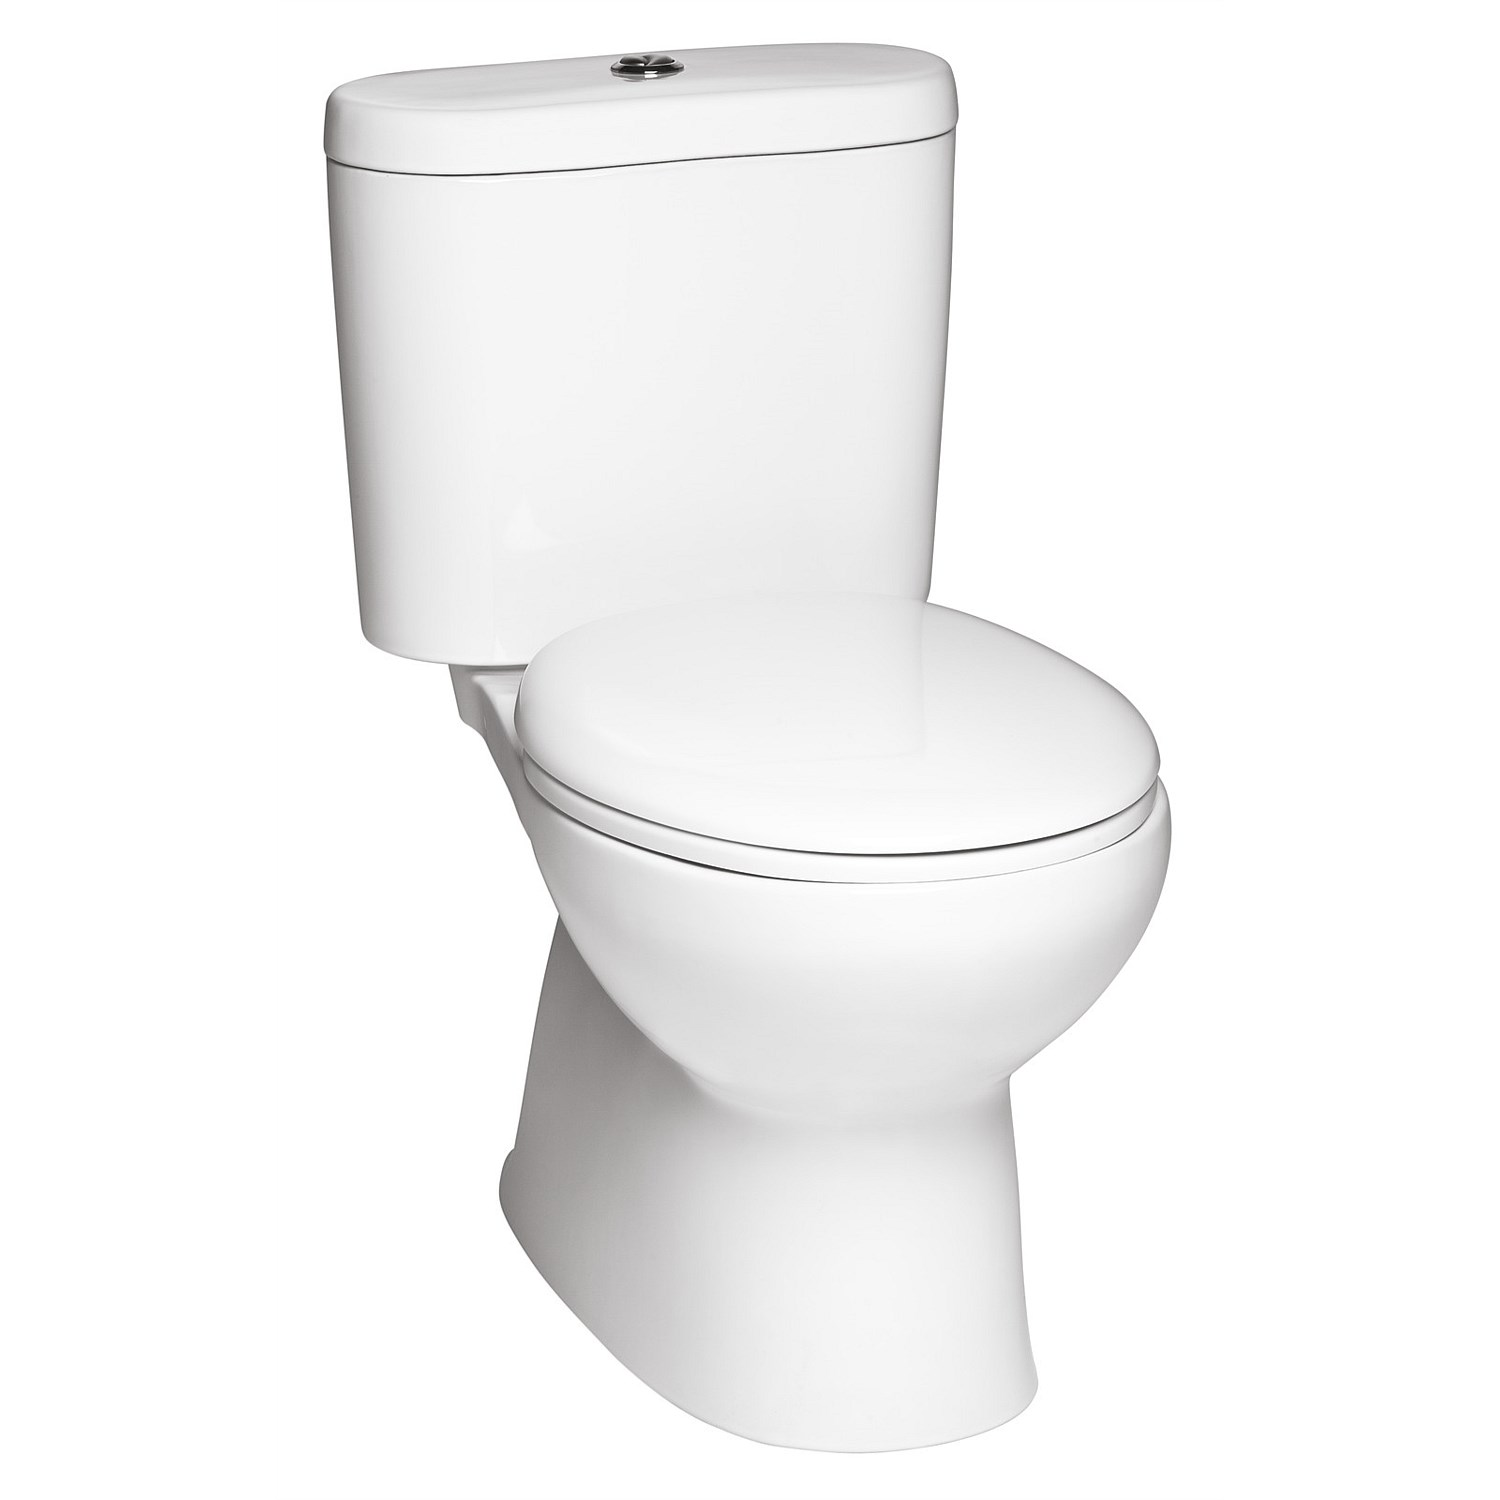 Toilet Suites | Plumbing World - Toto Valdes Close-Coupled Toilet Suite